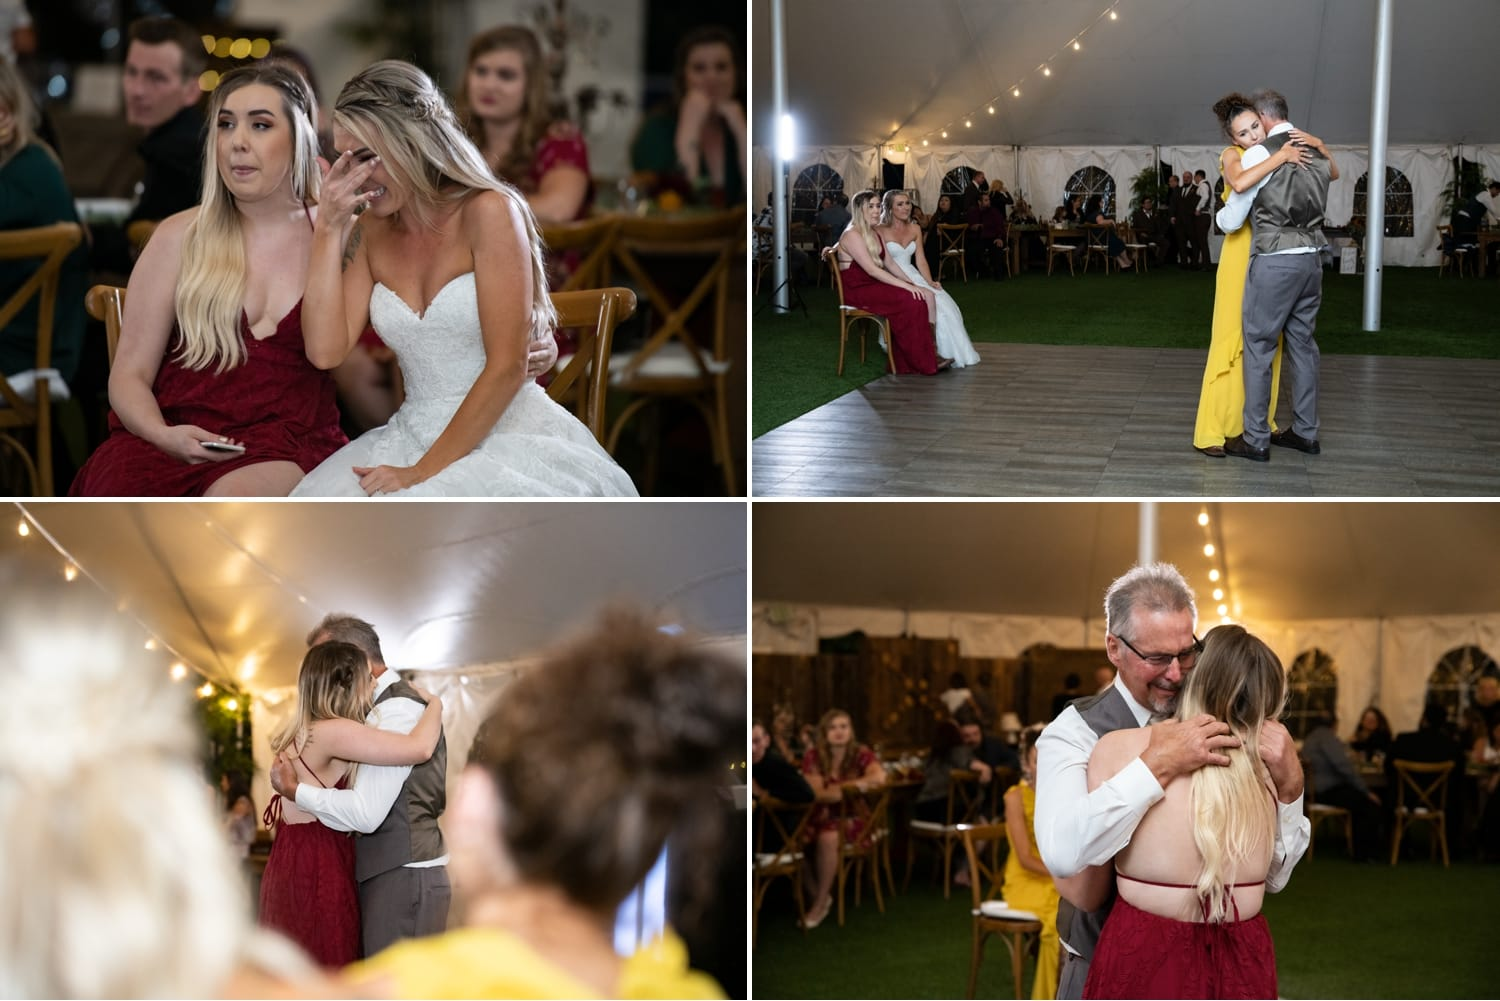 Bride's sisters dancing with dad at wedding.